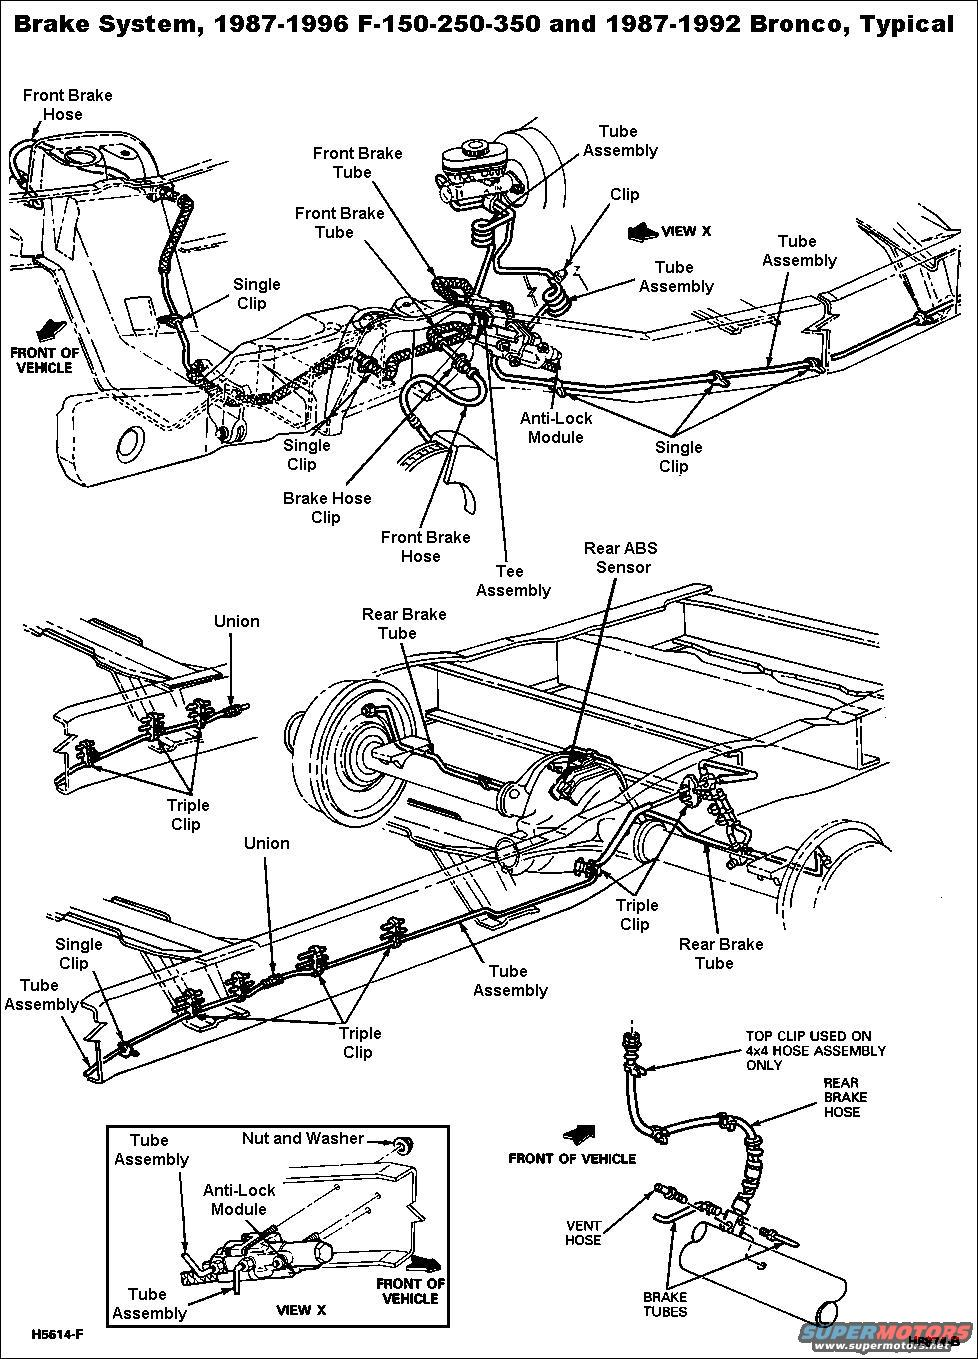 1146228 Updated Replaced Some Stuff Brakes Still Suck on 94 honda accord lx engine diagram